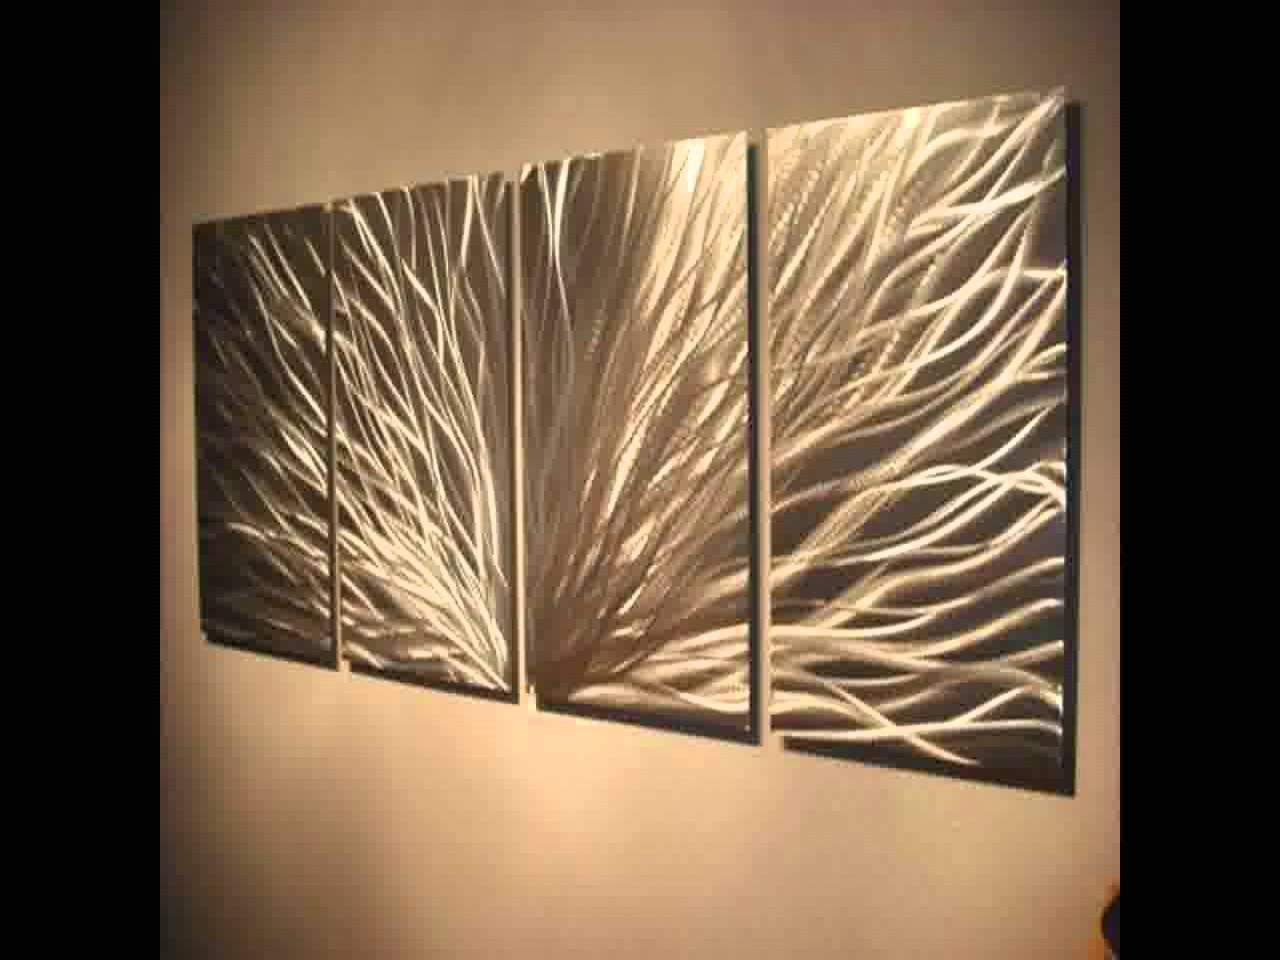 Angel Wings Wall Art Design Ideas – Youtube With Regard To Angel Wing Wall Art (View 9 of 20)